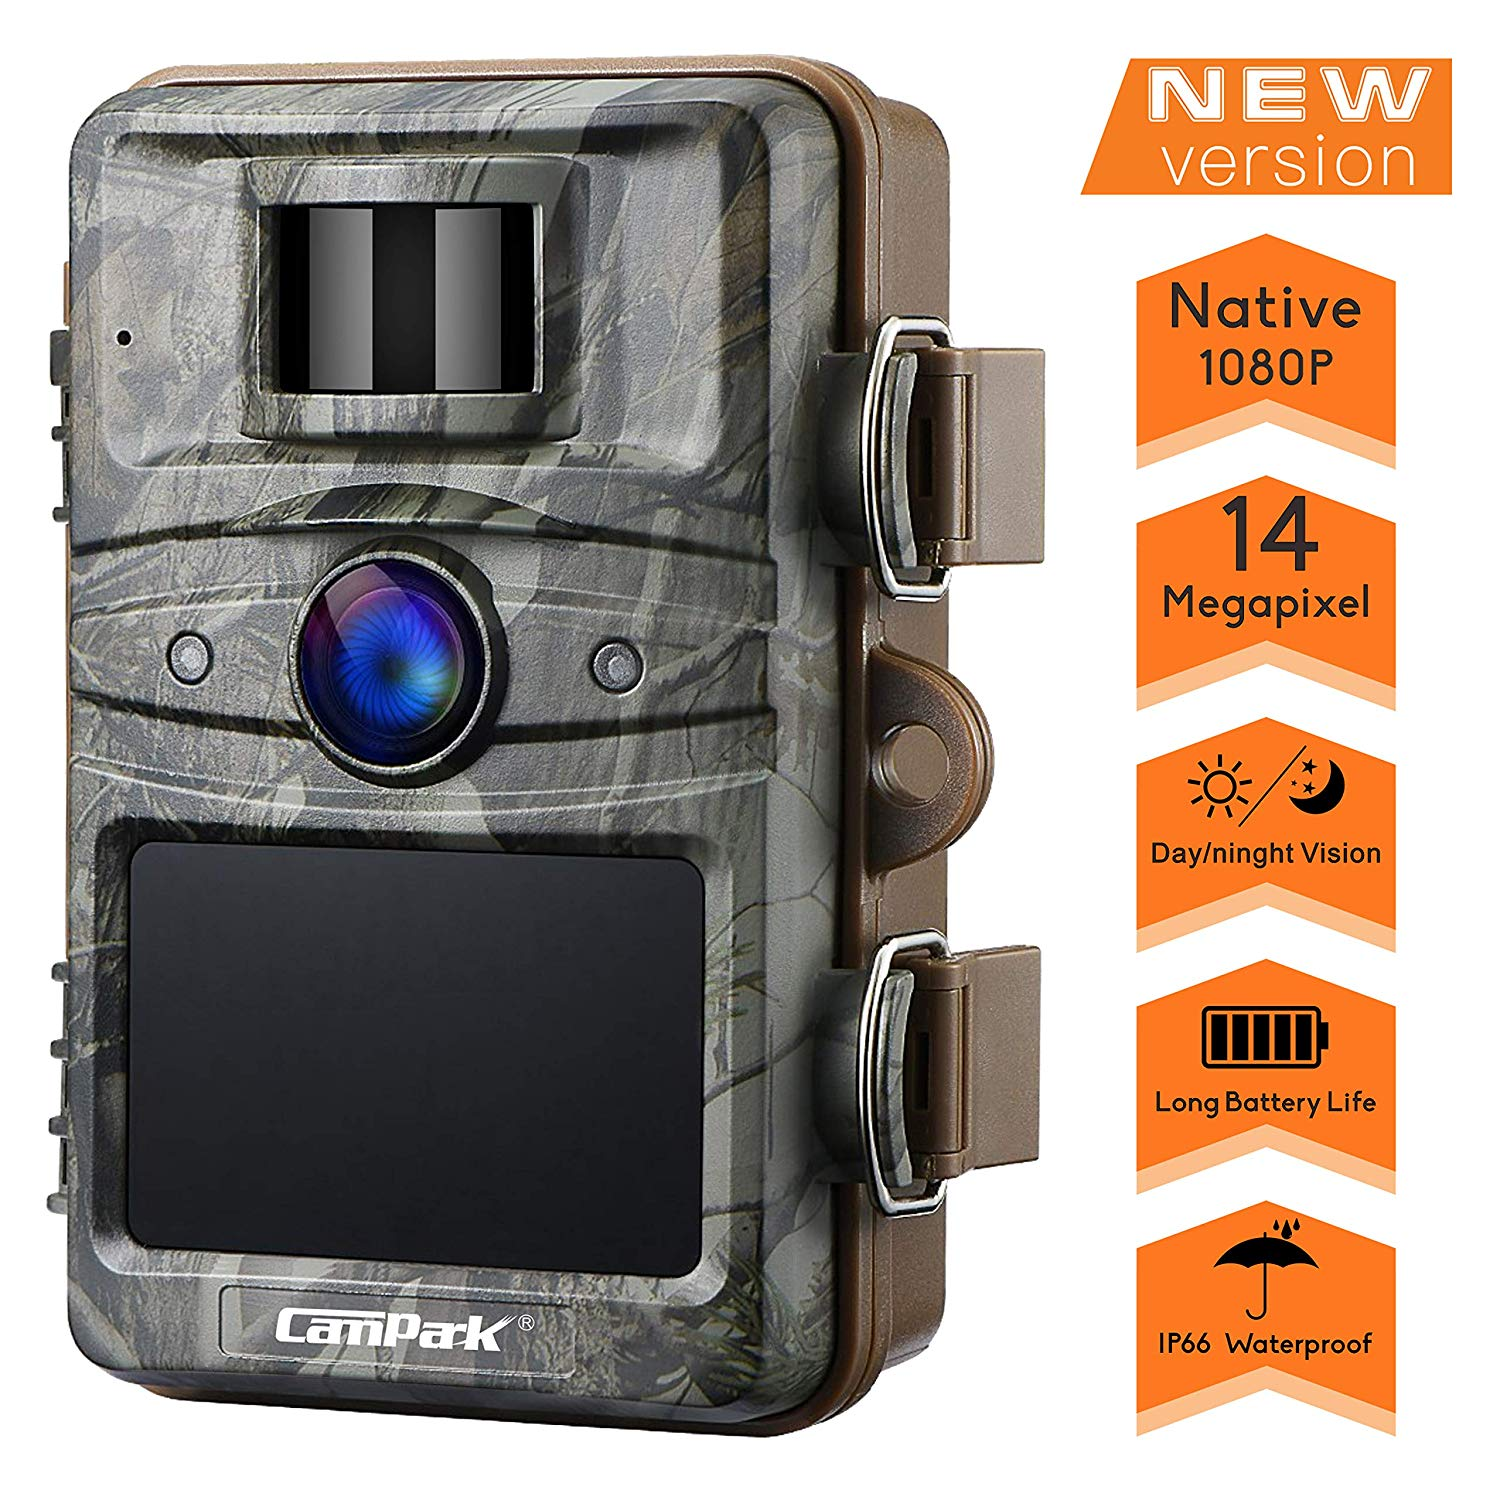 Top 10 Best Trail Cameras Under 100 Dollars 2021 Reviews 9